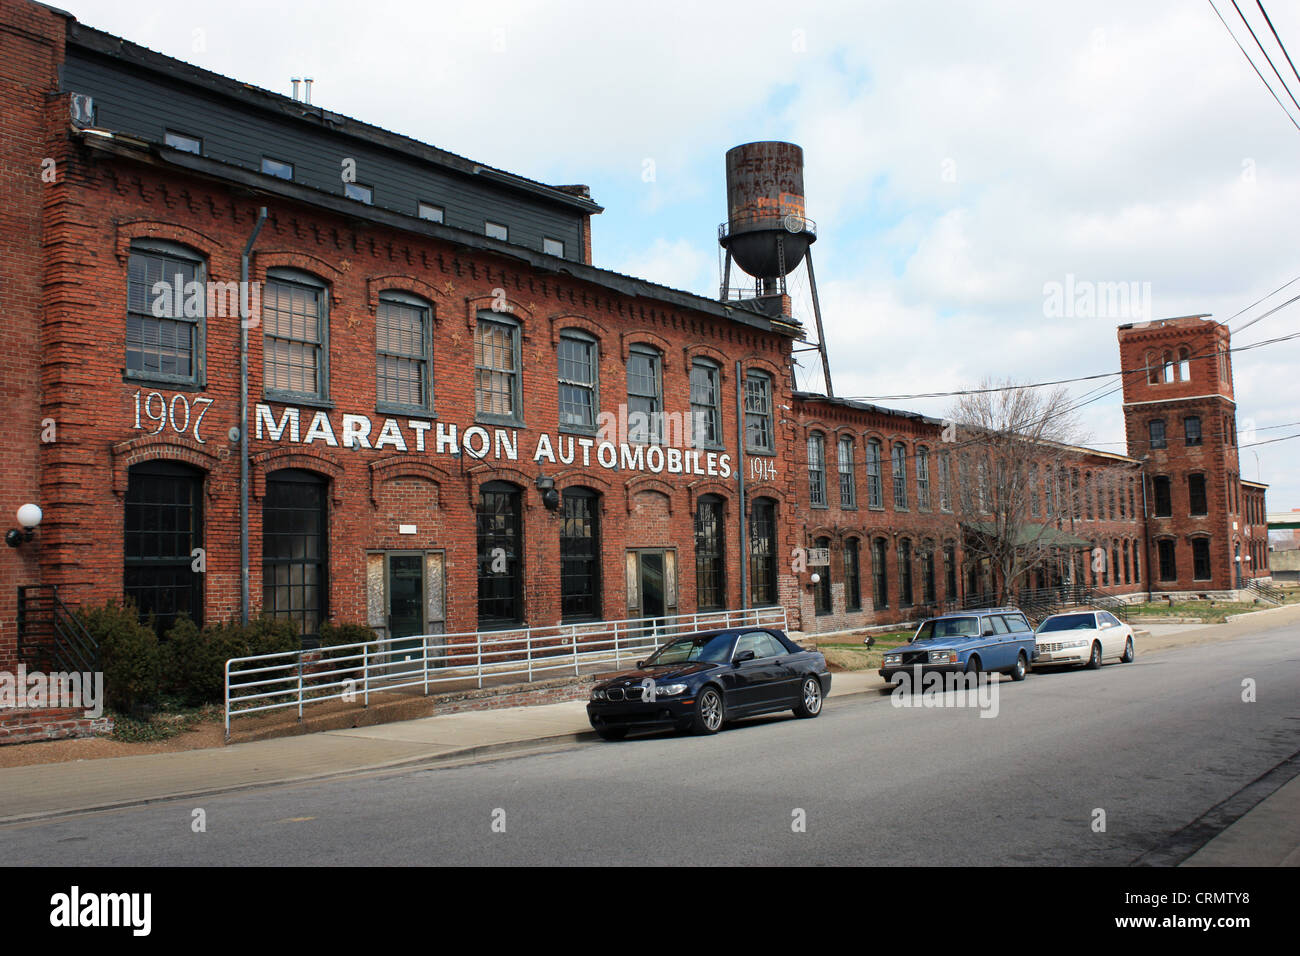 marathon motor works building in nashville tennessee